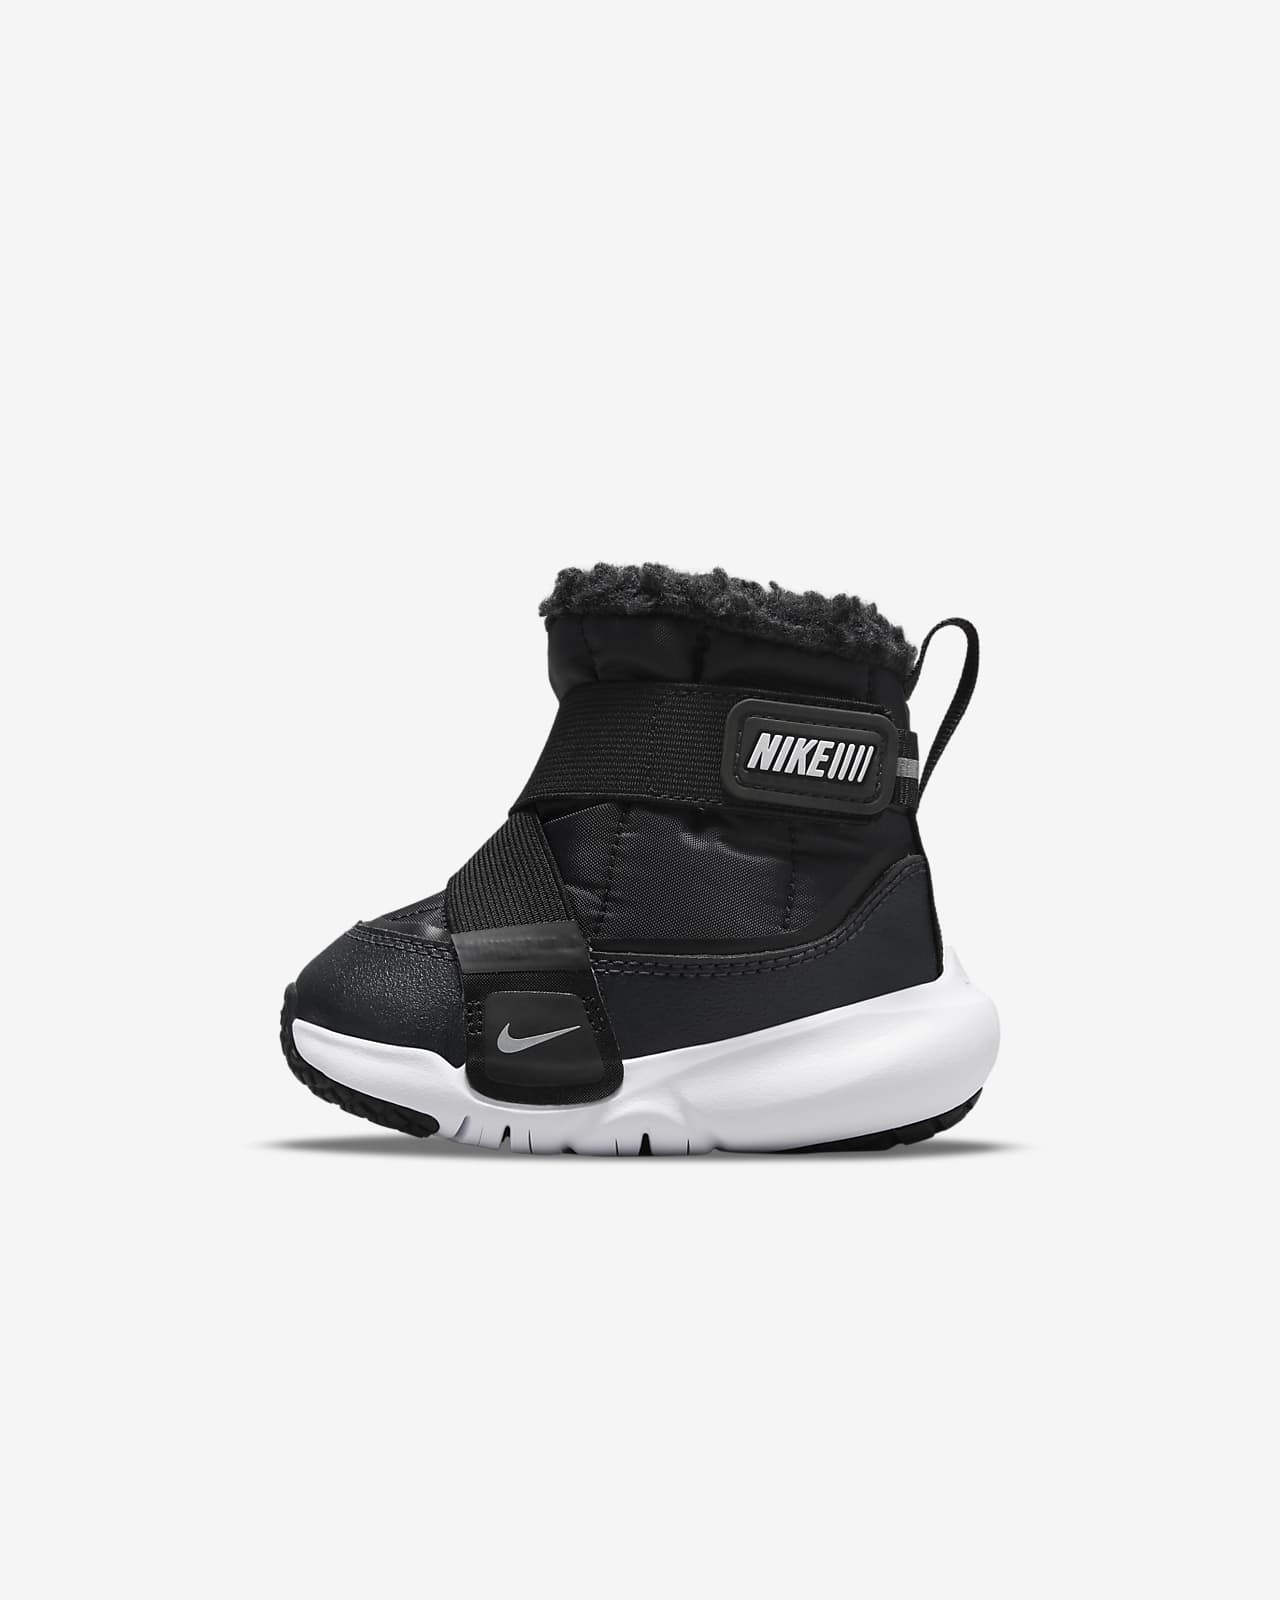 Nike Flex Advance Baby/Toddler Boots